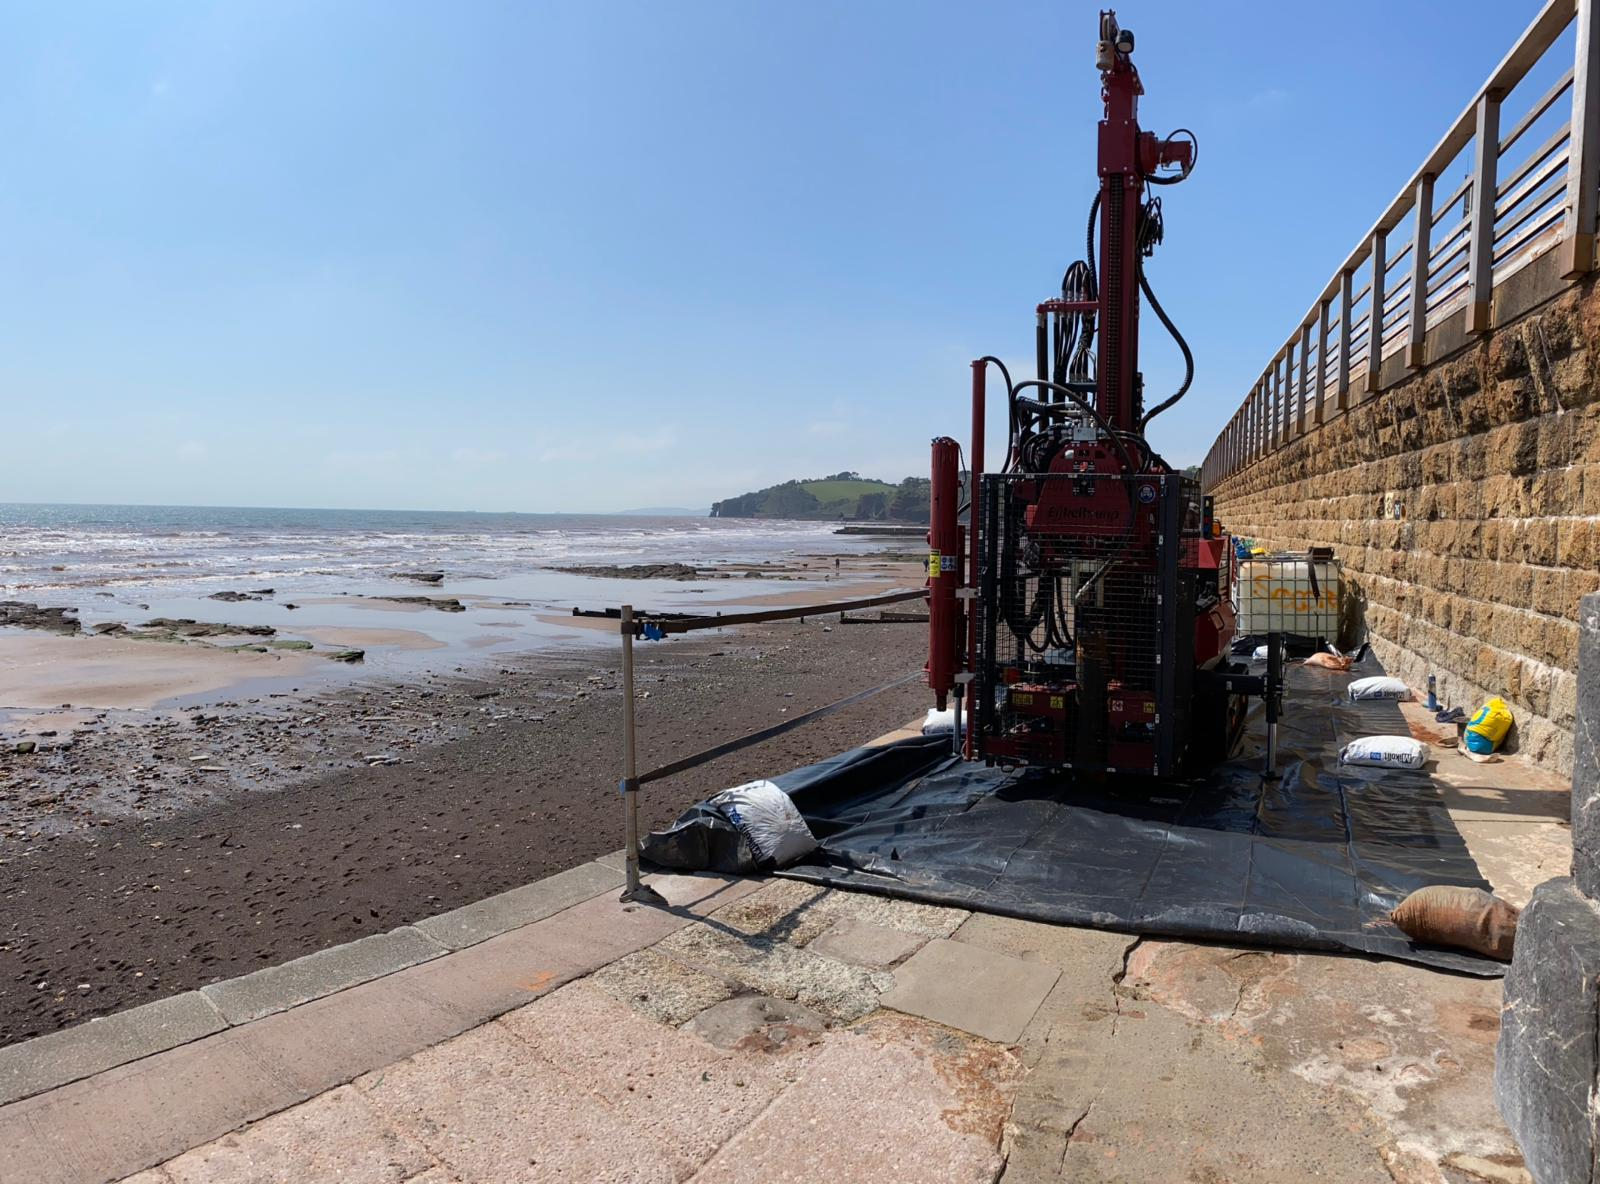 A sonic drilling rig in use by the beach